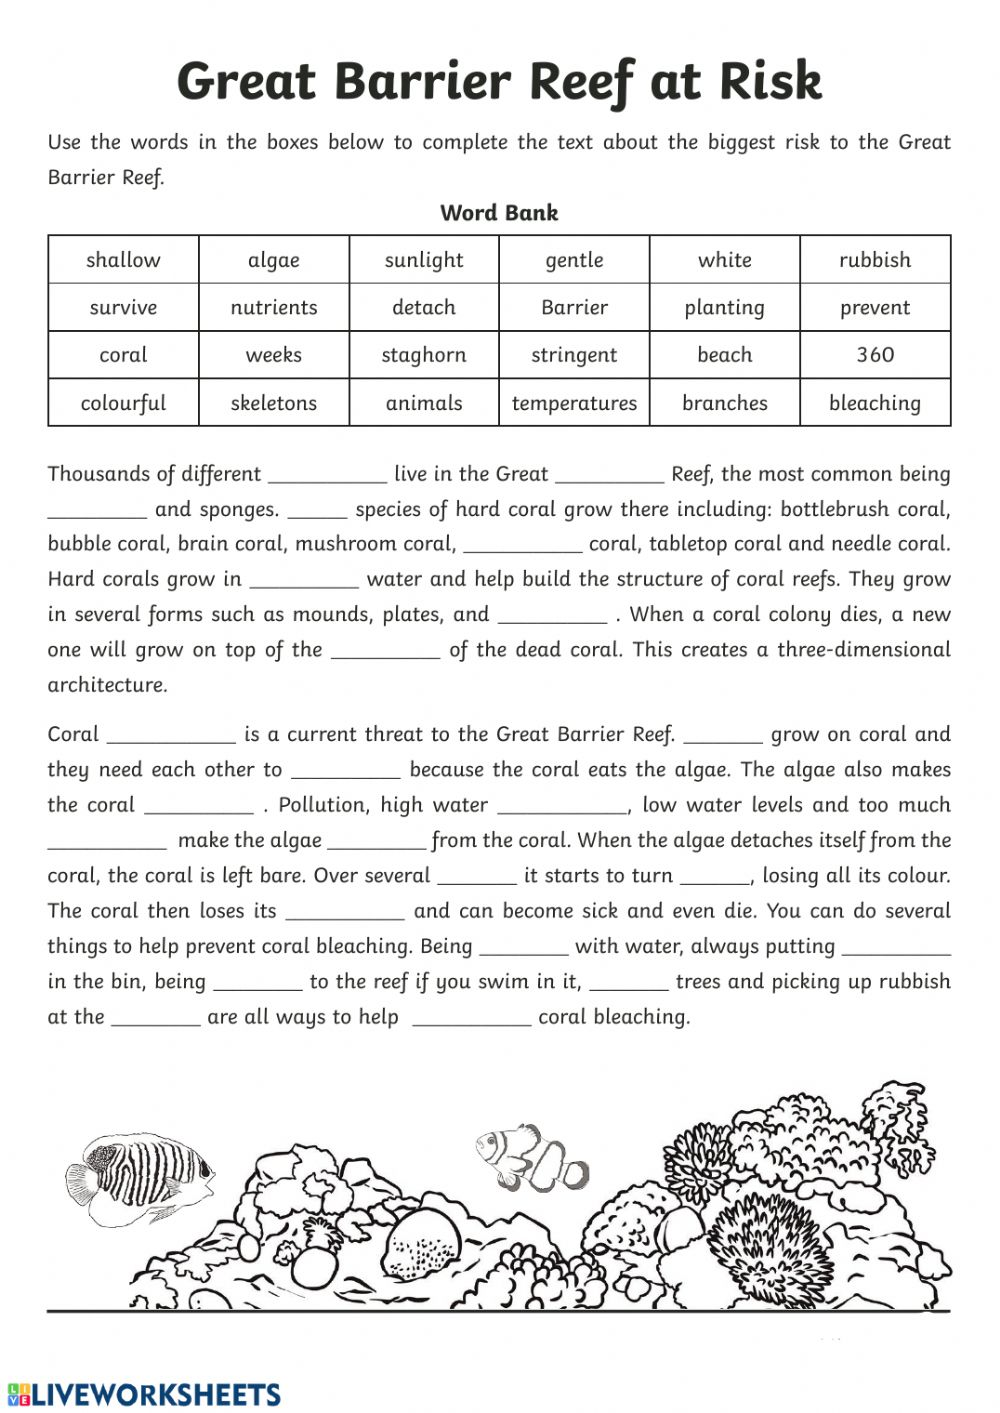 The Great Barrier Reef - Interactive worksheet